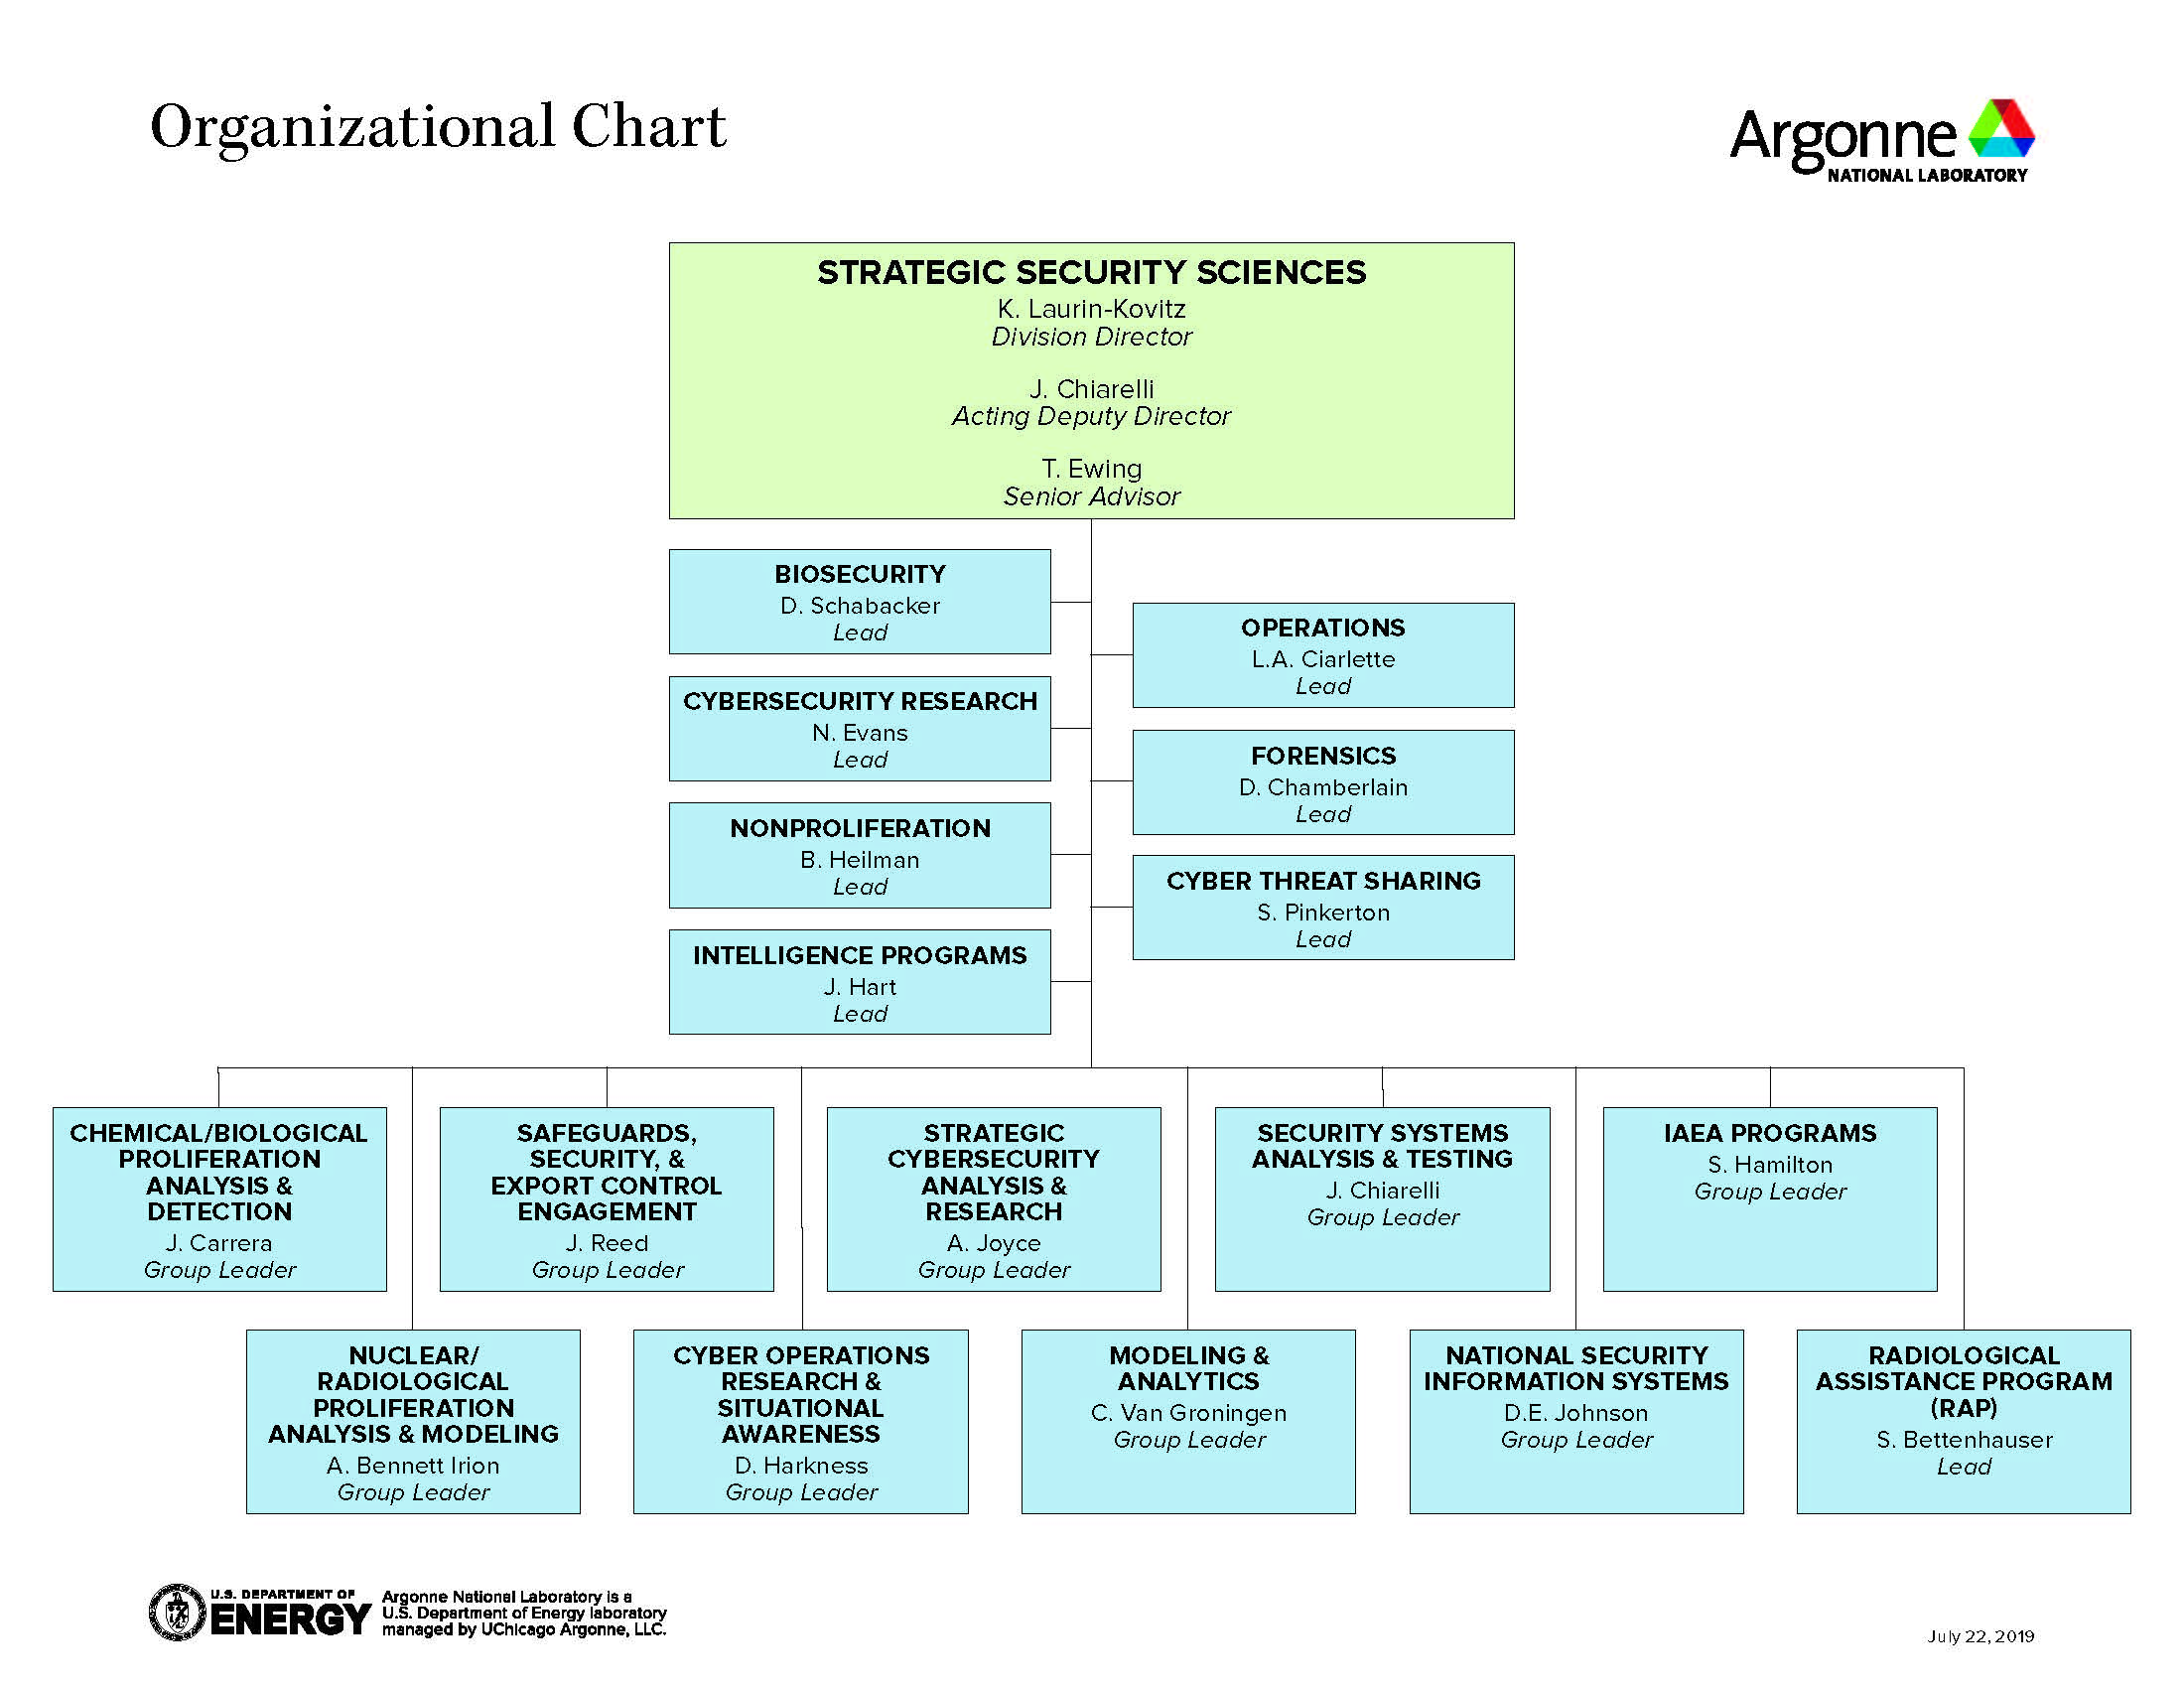 Organization chart of the Argonne Strategic Security Sciences division